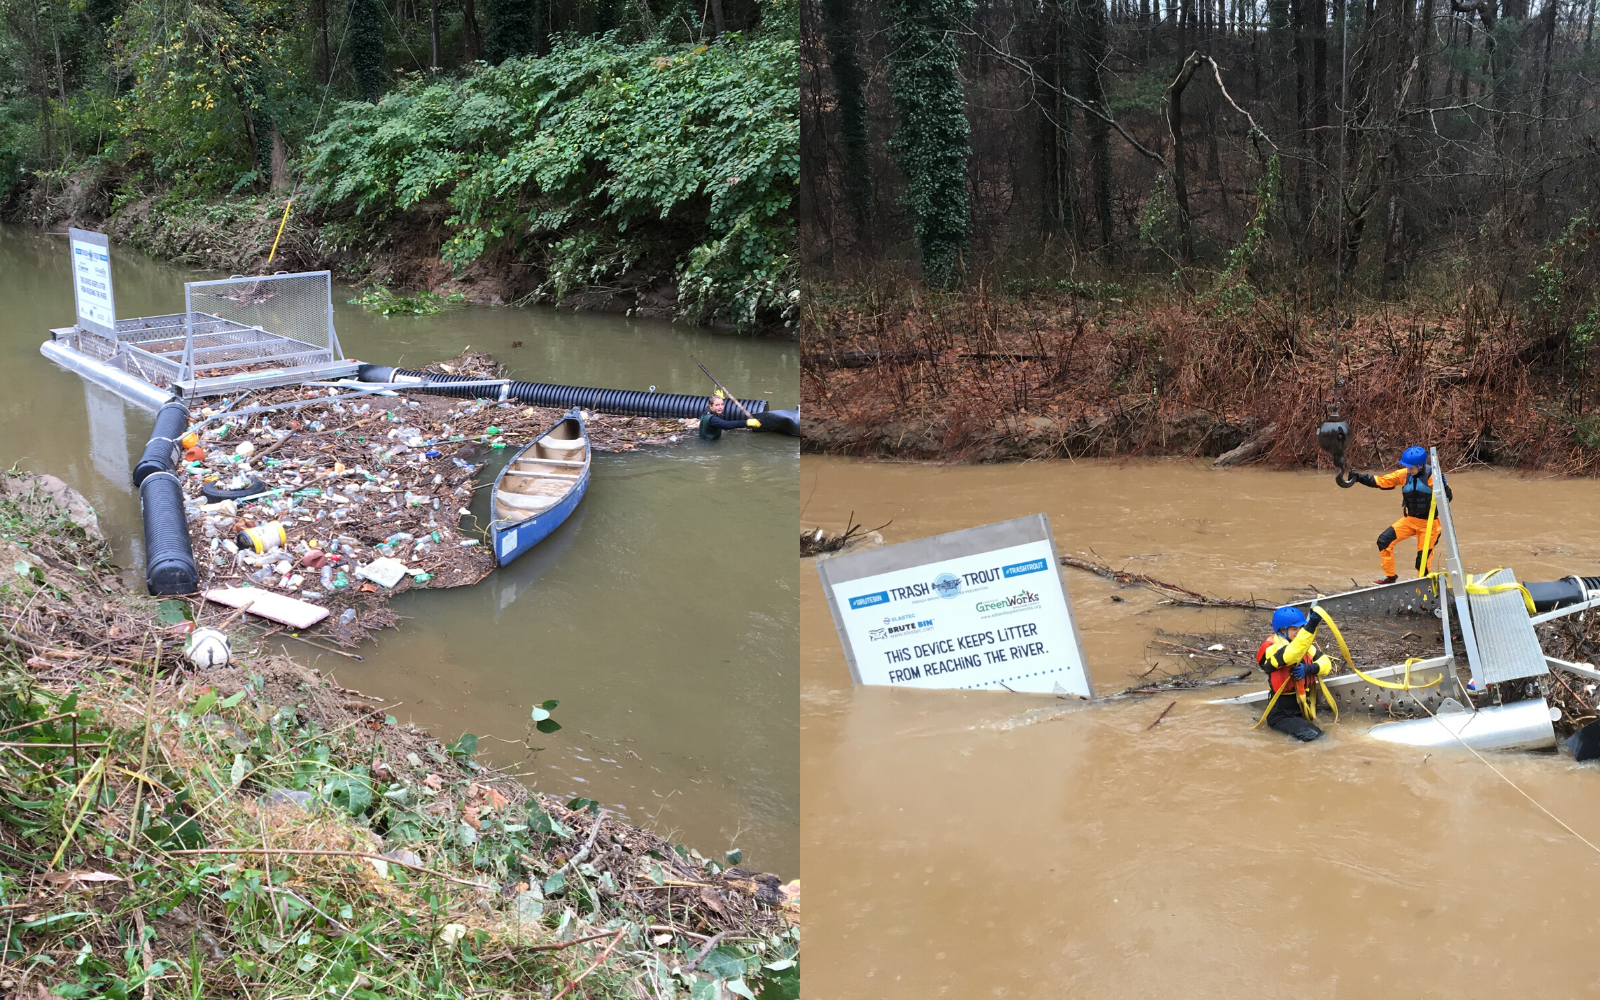 Help us #CleanAVL by fixing the Hominy Creek Trash Trout image